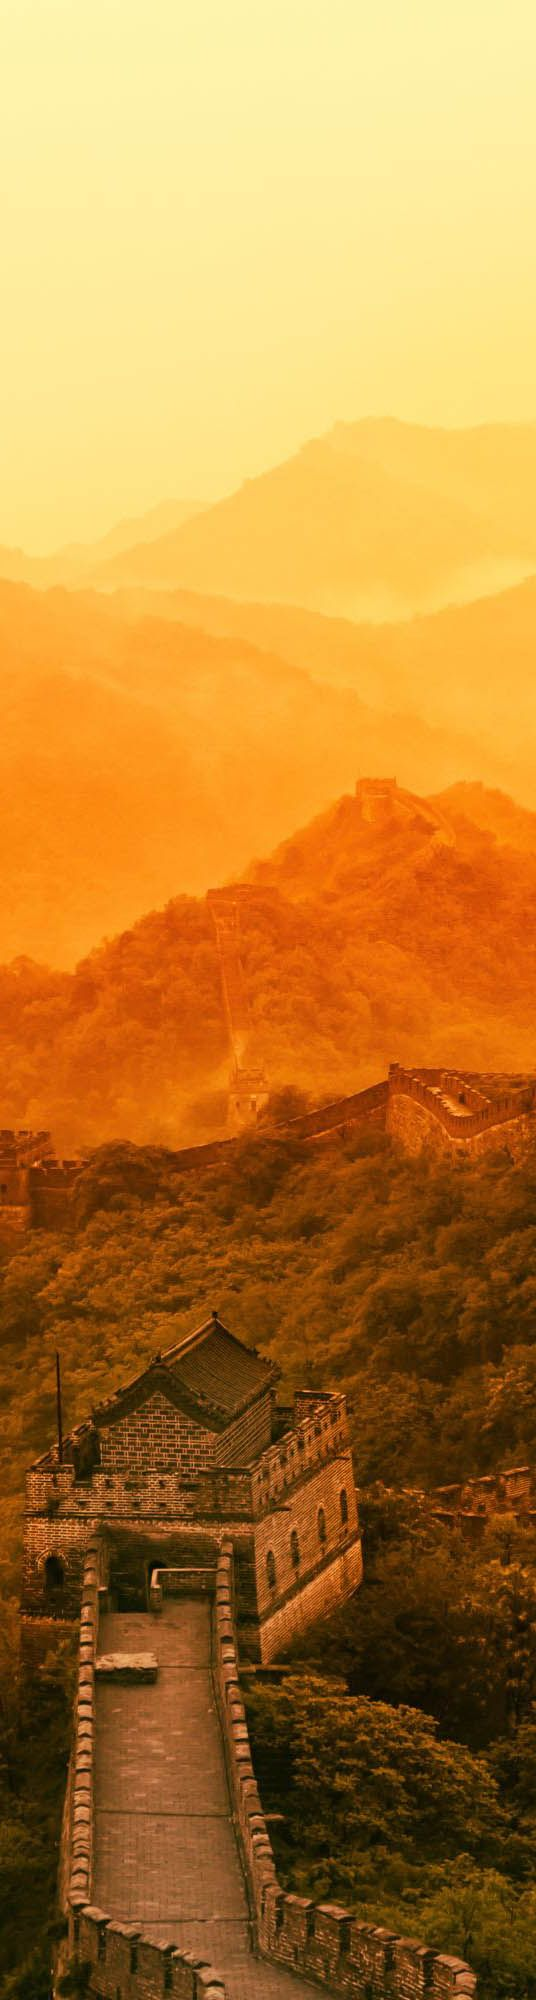 Along the Great Wall of China - photo from Trey Ratcliff.